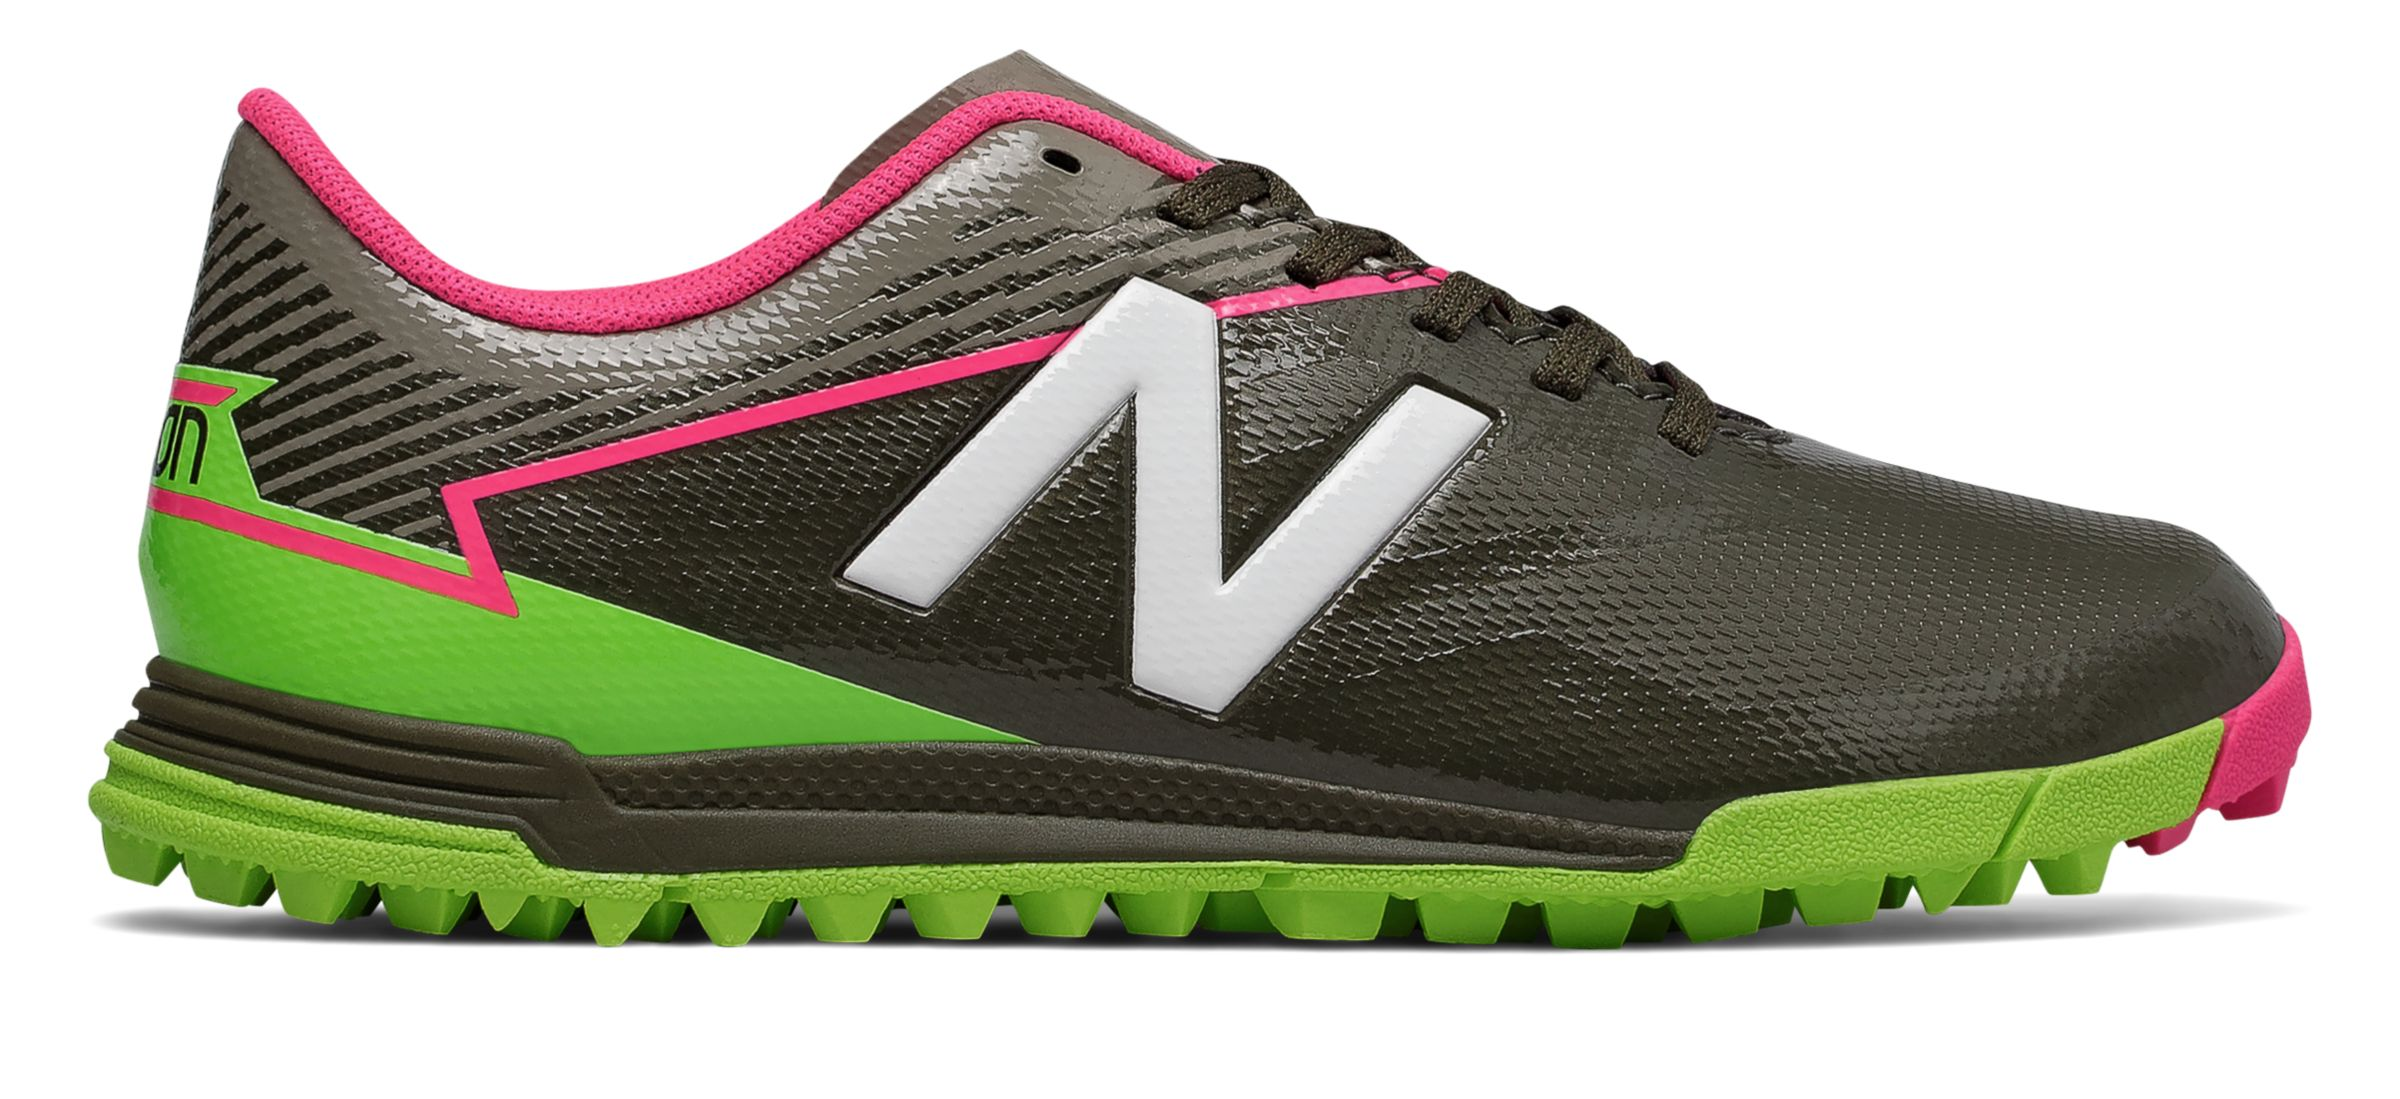 NB Junior Furon 3.0 Dispatch TF, Military Dark Triumph with Alpha Pink & Energy Lime